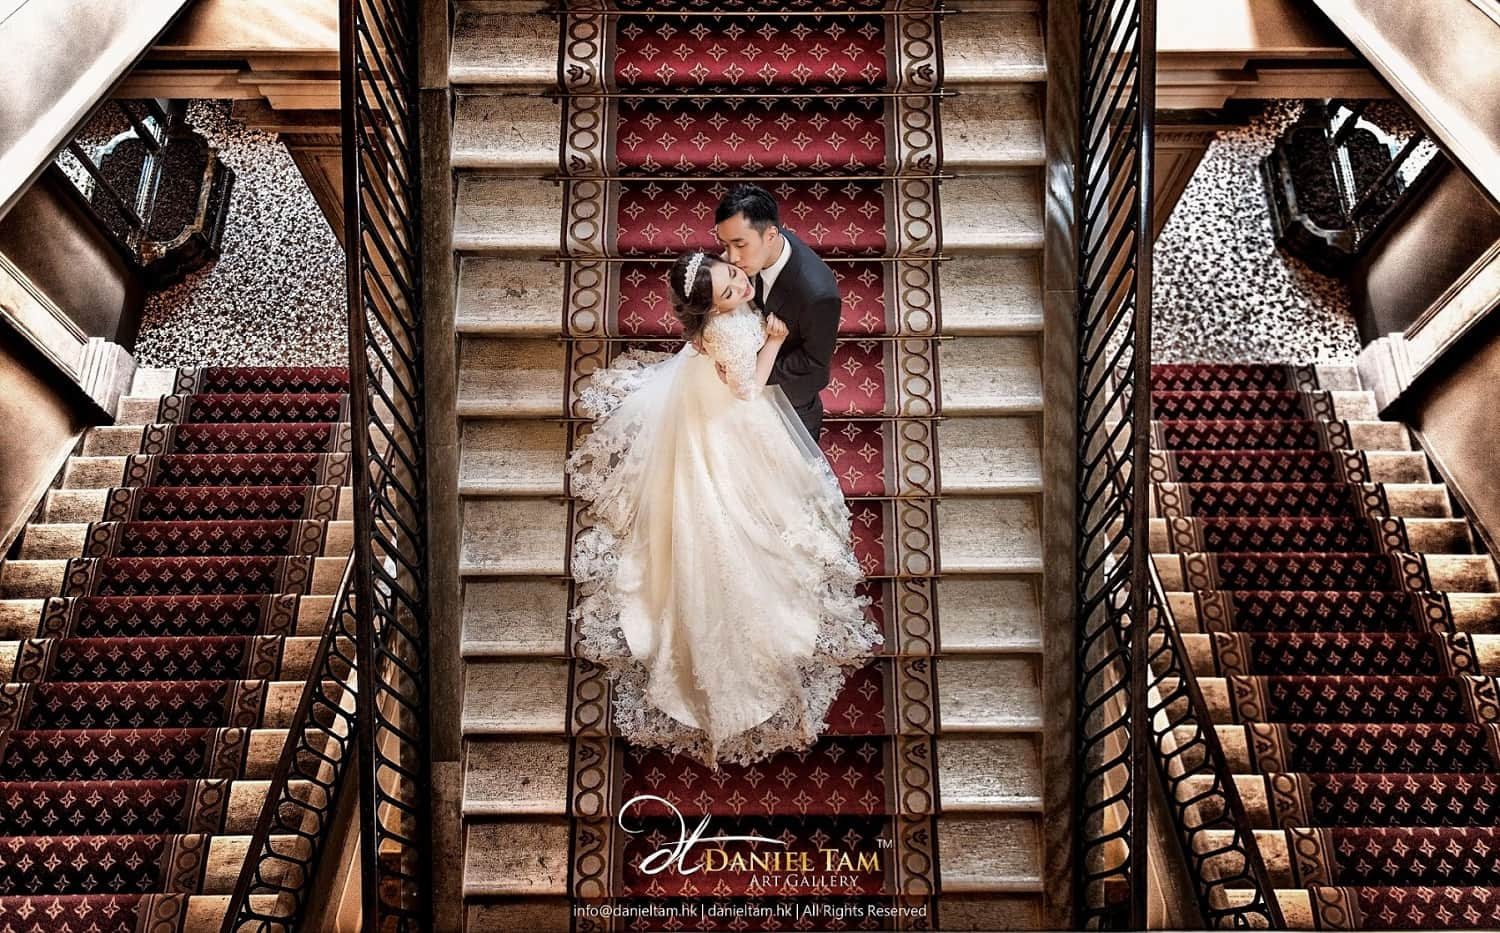 kelly-and-toby-venice-prewedding-nice-hotel-stair-many-good-composition-in-europe-e1486119139563-min